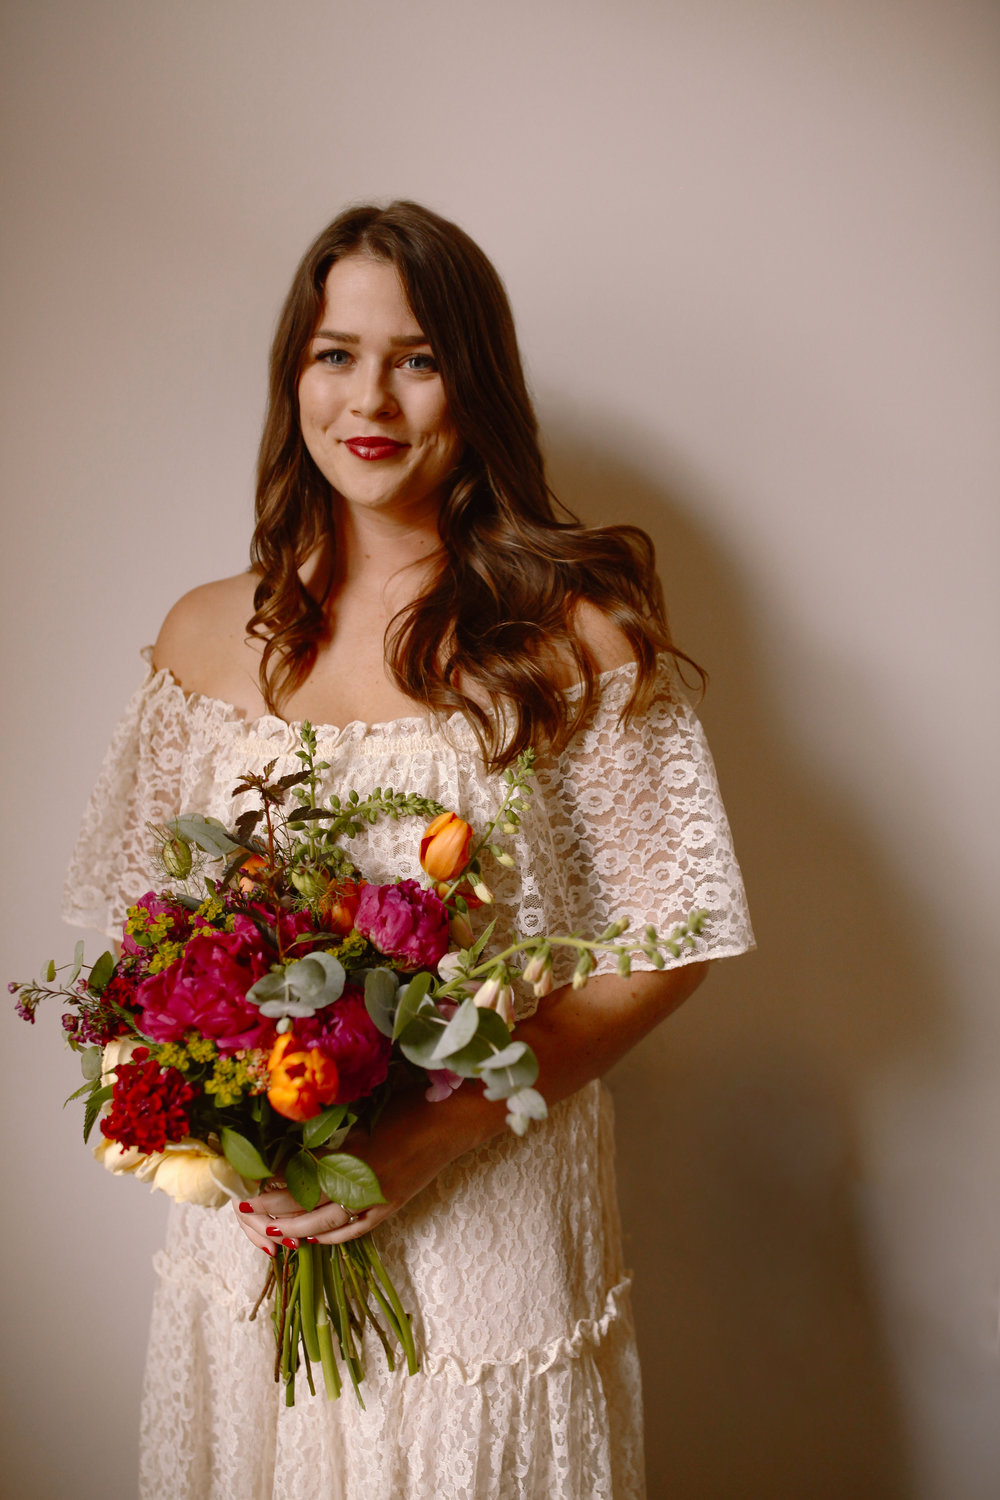 Nashville's Maria Drummond's Wedding to Mississippian Taylor Ivey in The TennesseanHERE -